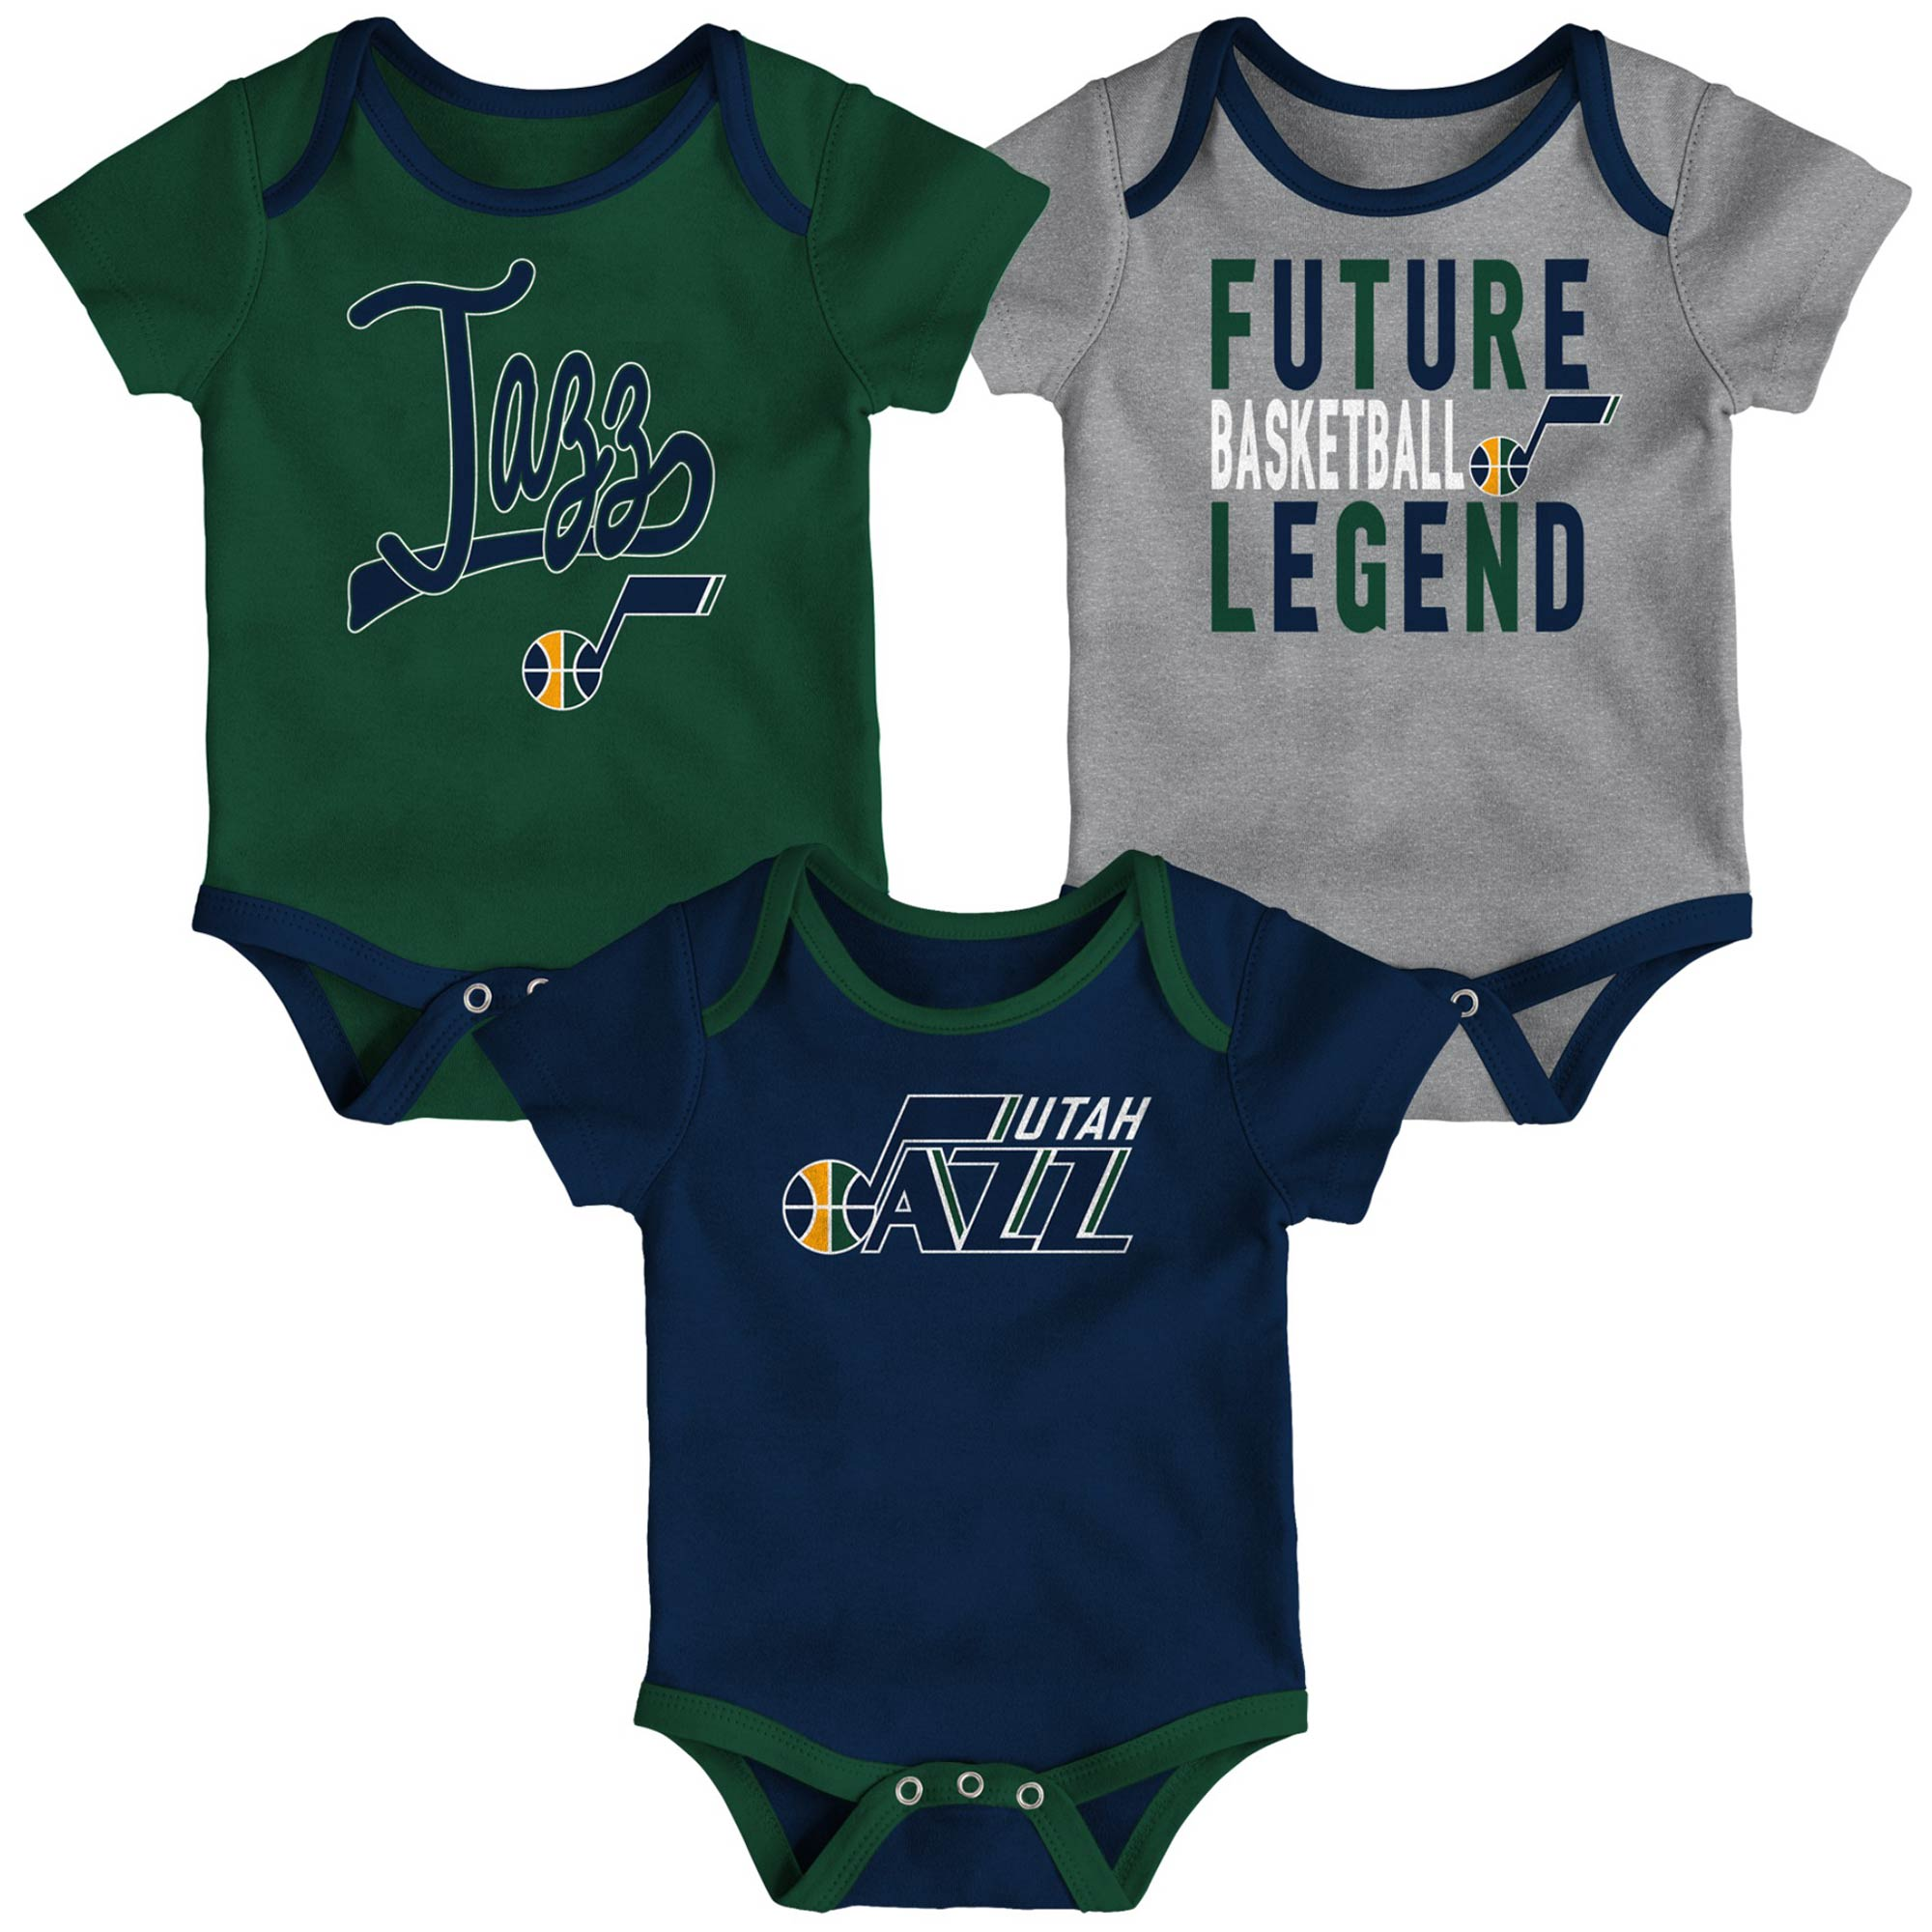 Utah Jazz Infant Champion Three-Piece Bodysuit Set - Navy/Green/Gray